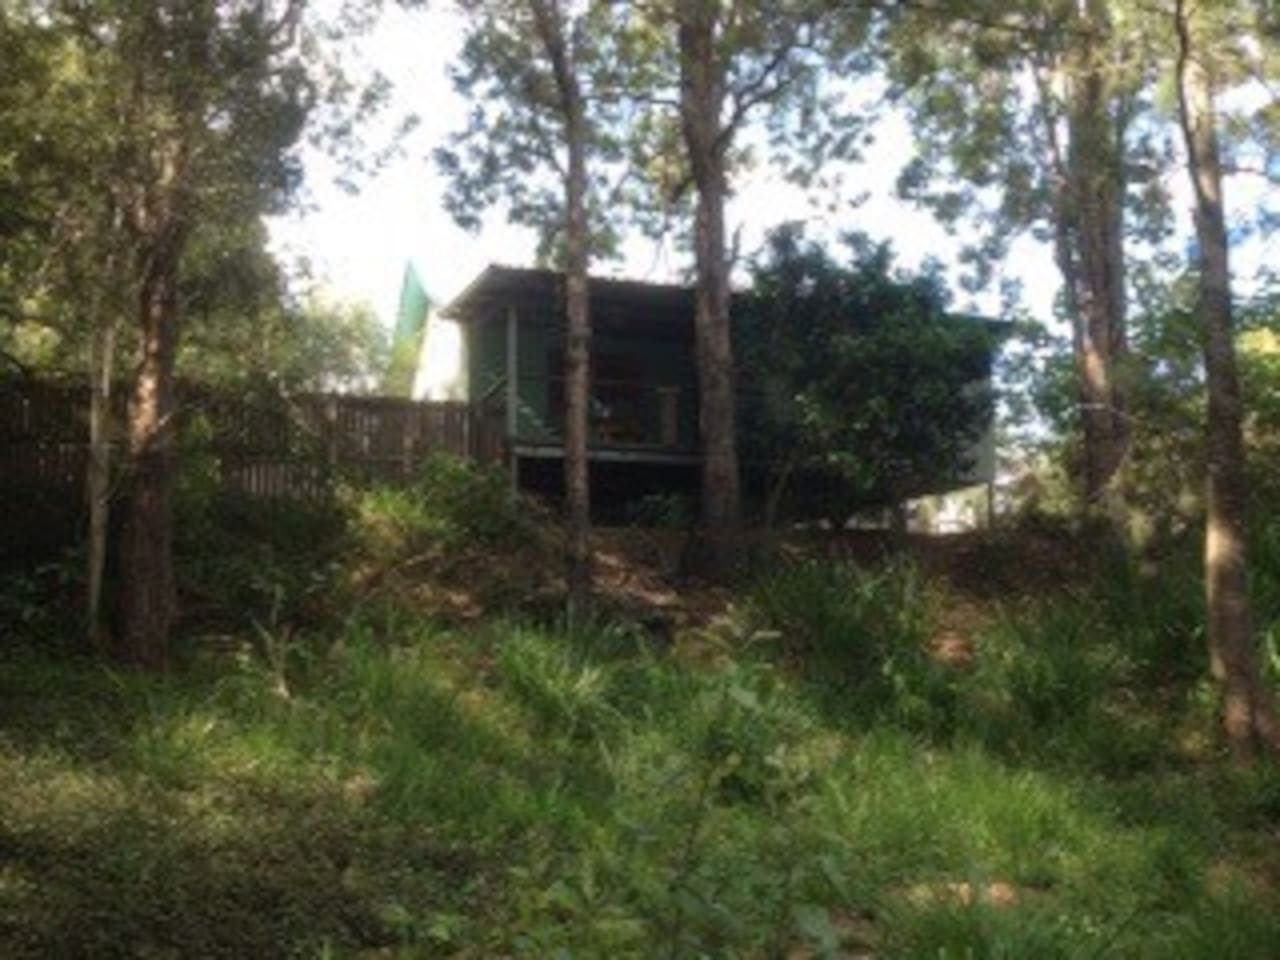 Private cabin in peaceful bushland. Nestled by the creek, you can escape the rat race and reconnect with nature.